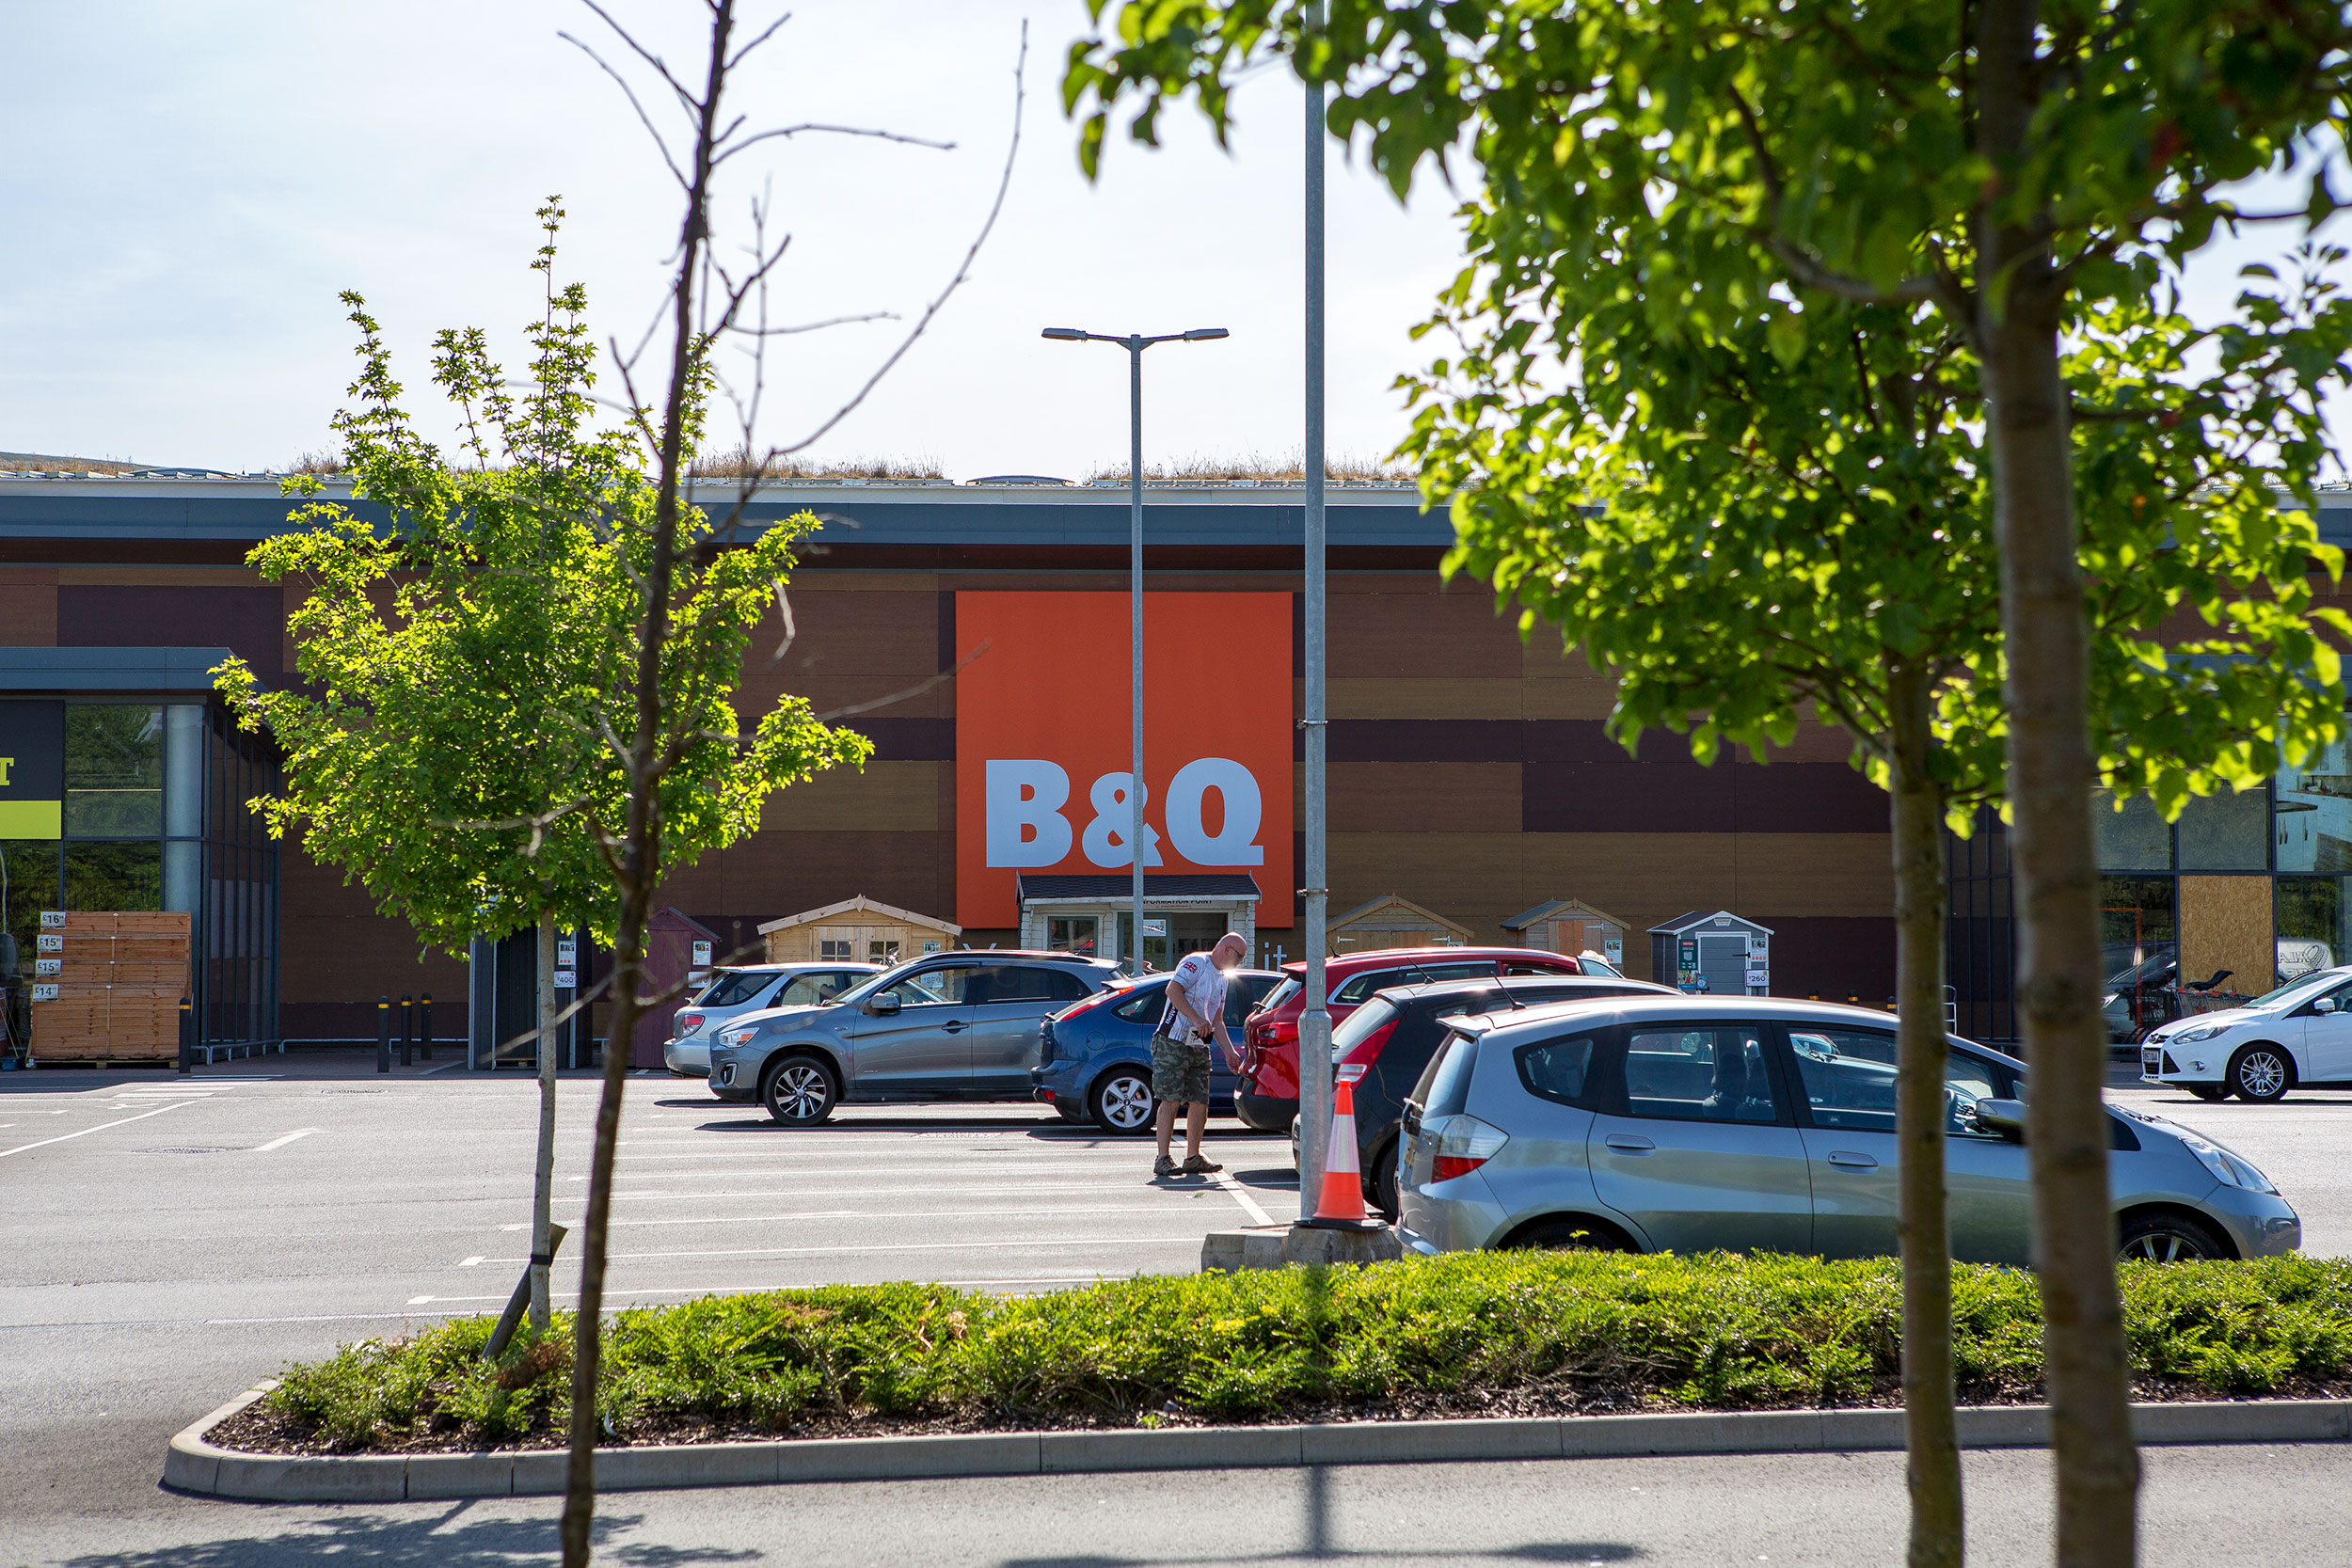 B&Q 'ECO LEARNING' SUPERSTORE